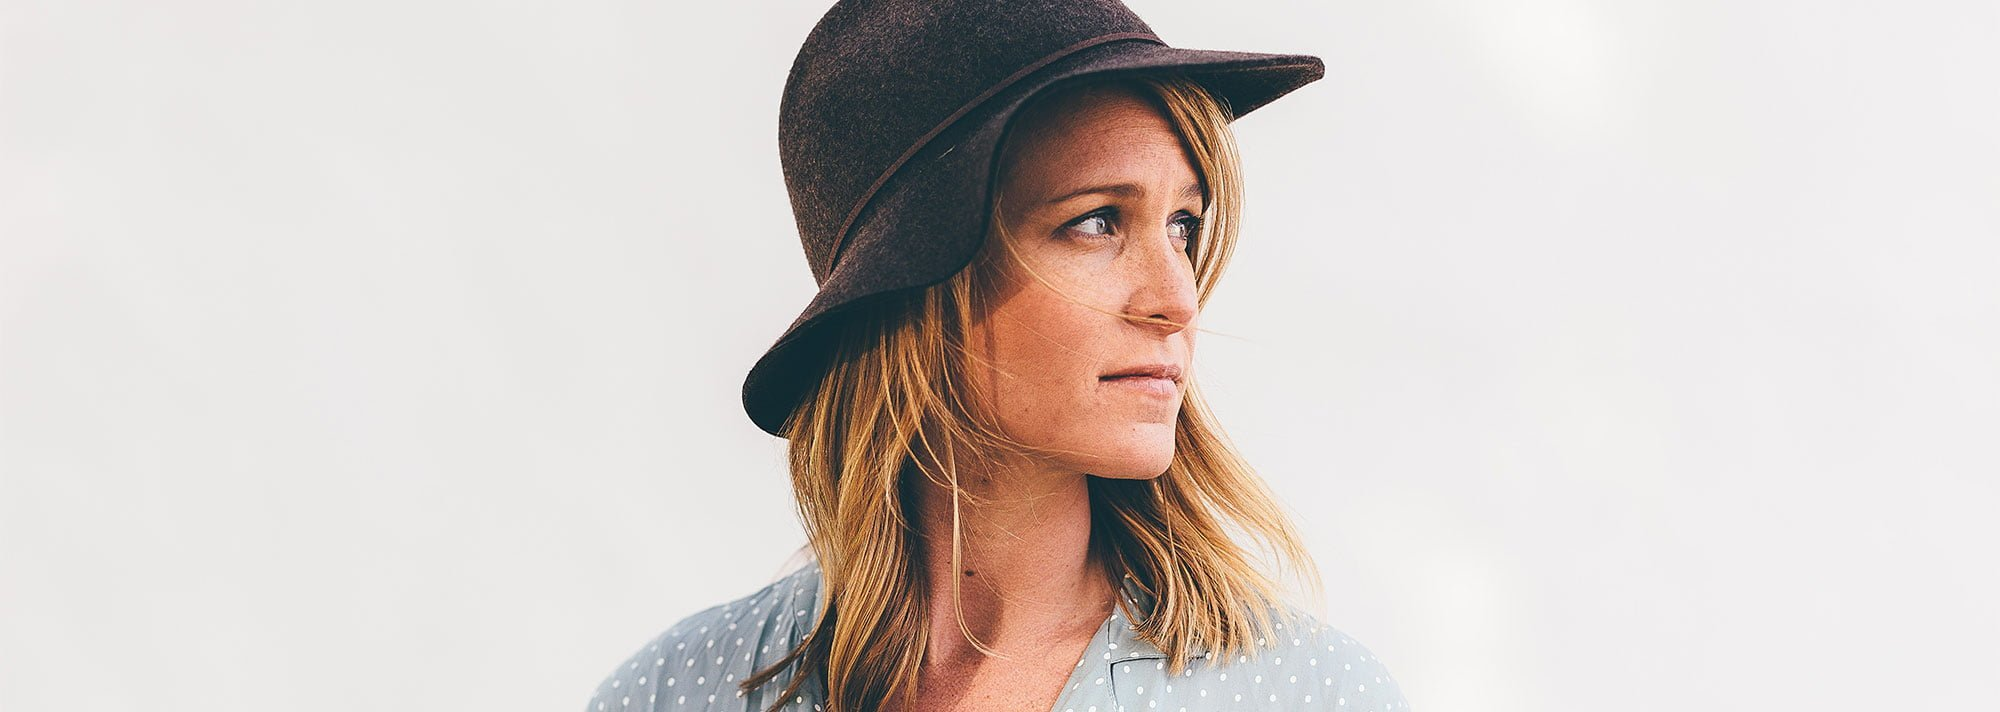 Woman wearing hat looking off into the distance